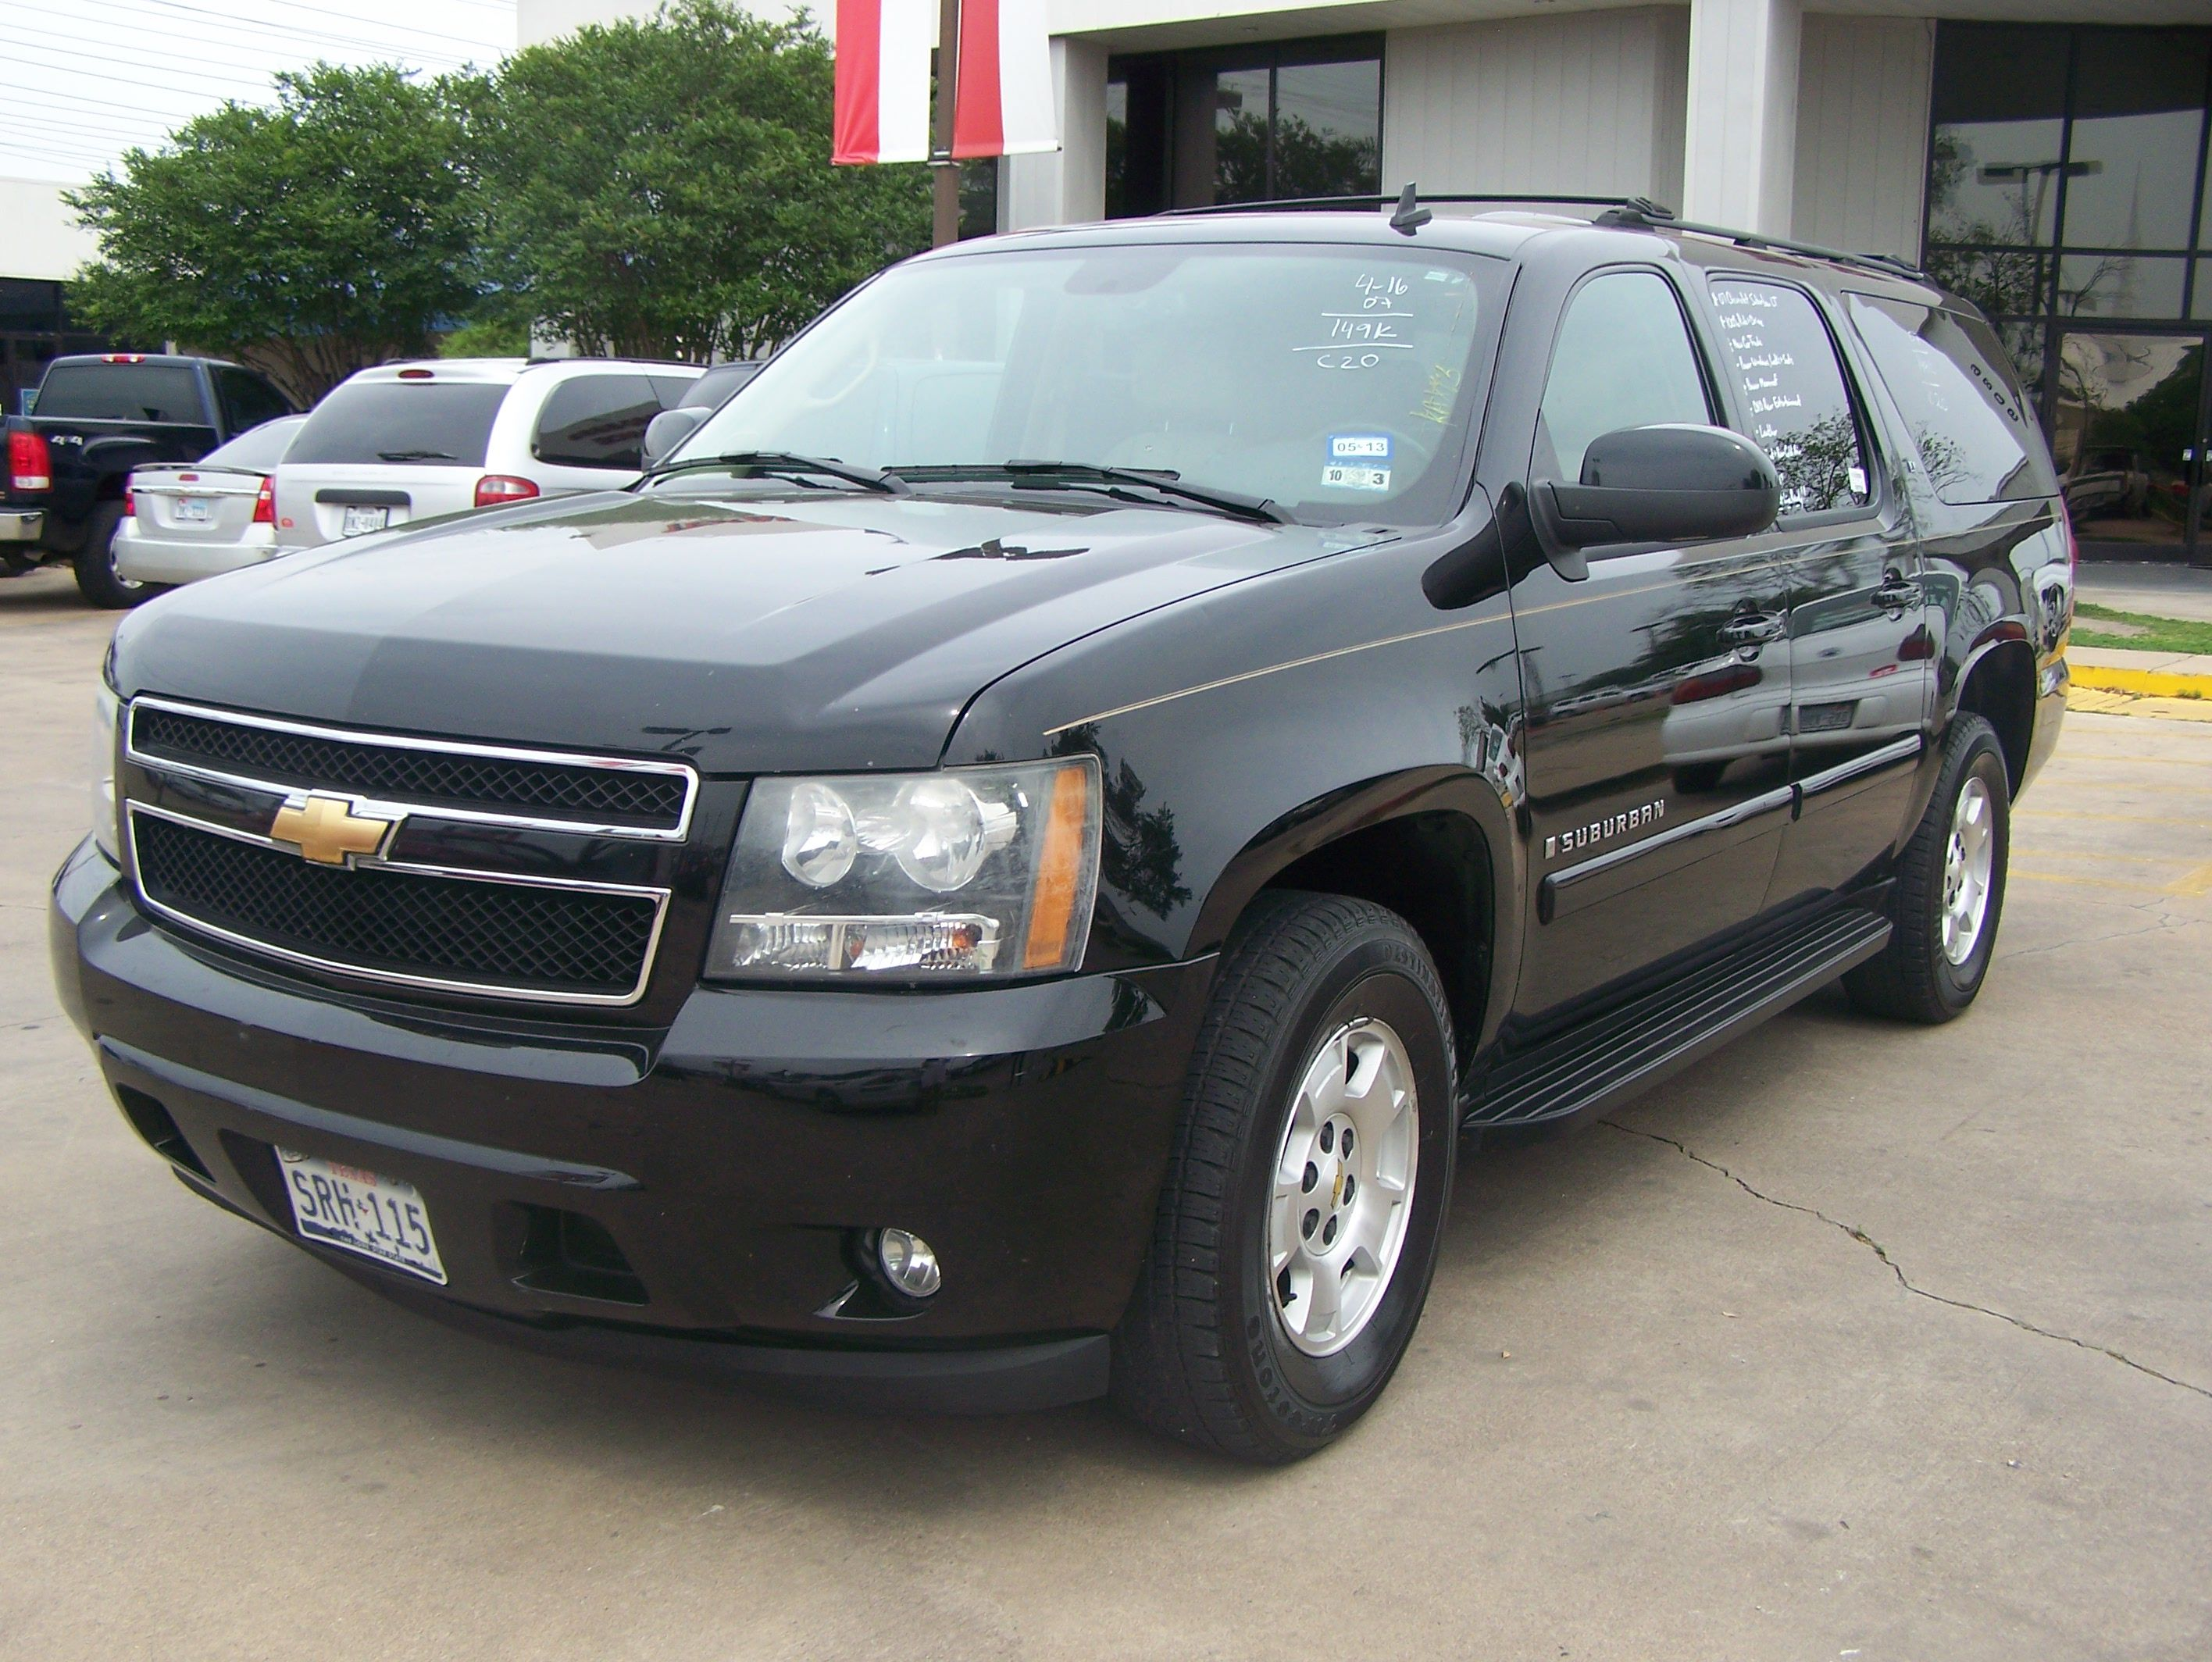 Buy A Used Car From Texas Auto Center Chevy Suburban Used